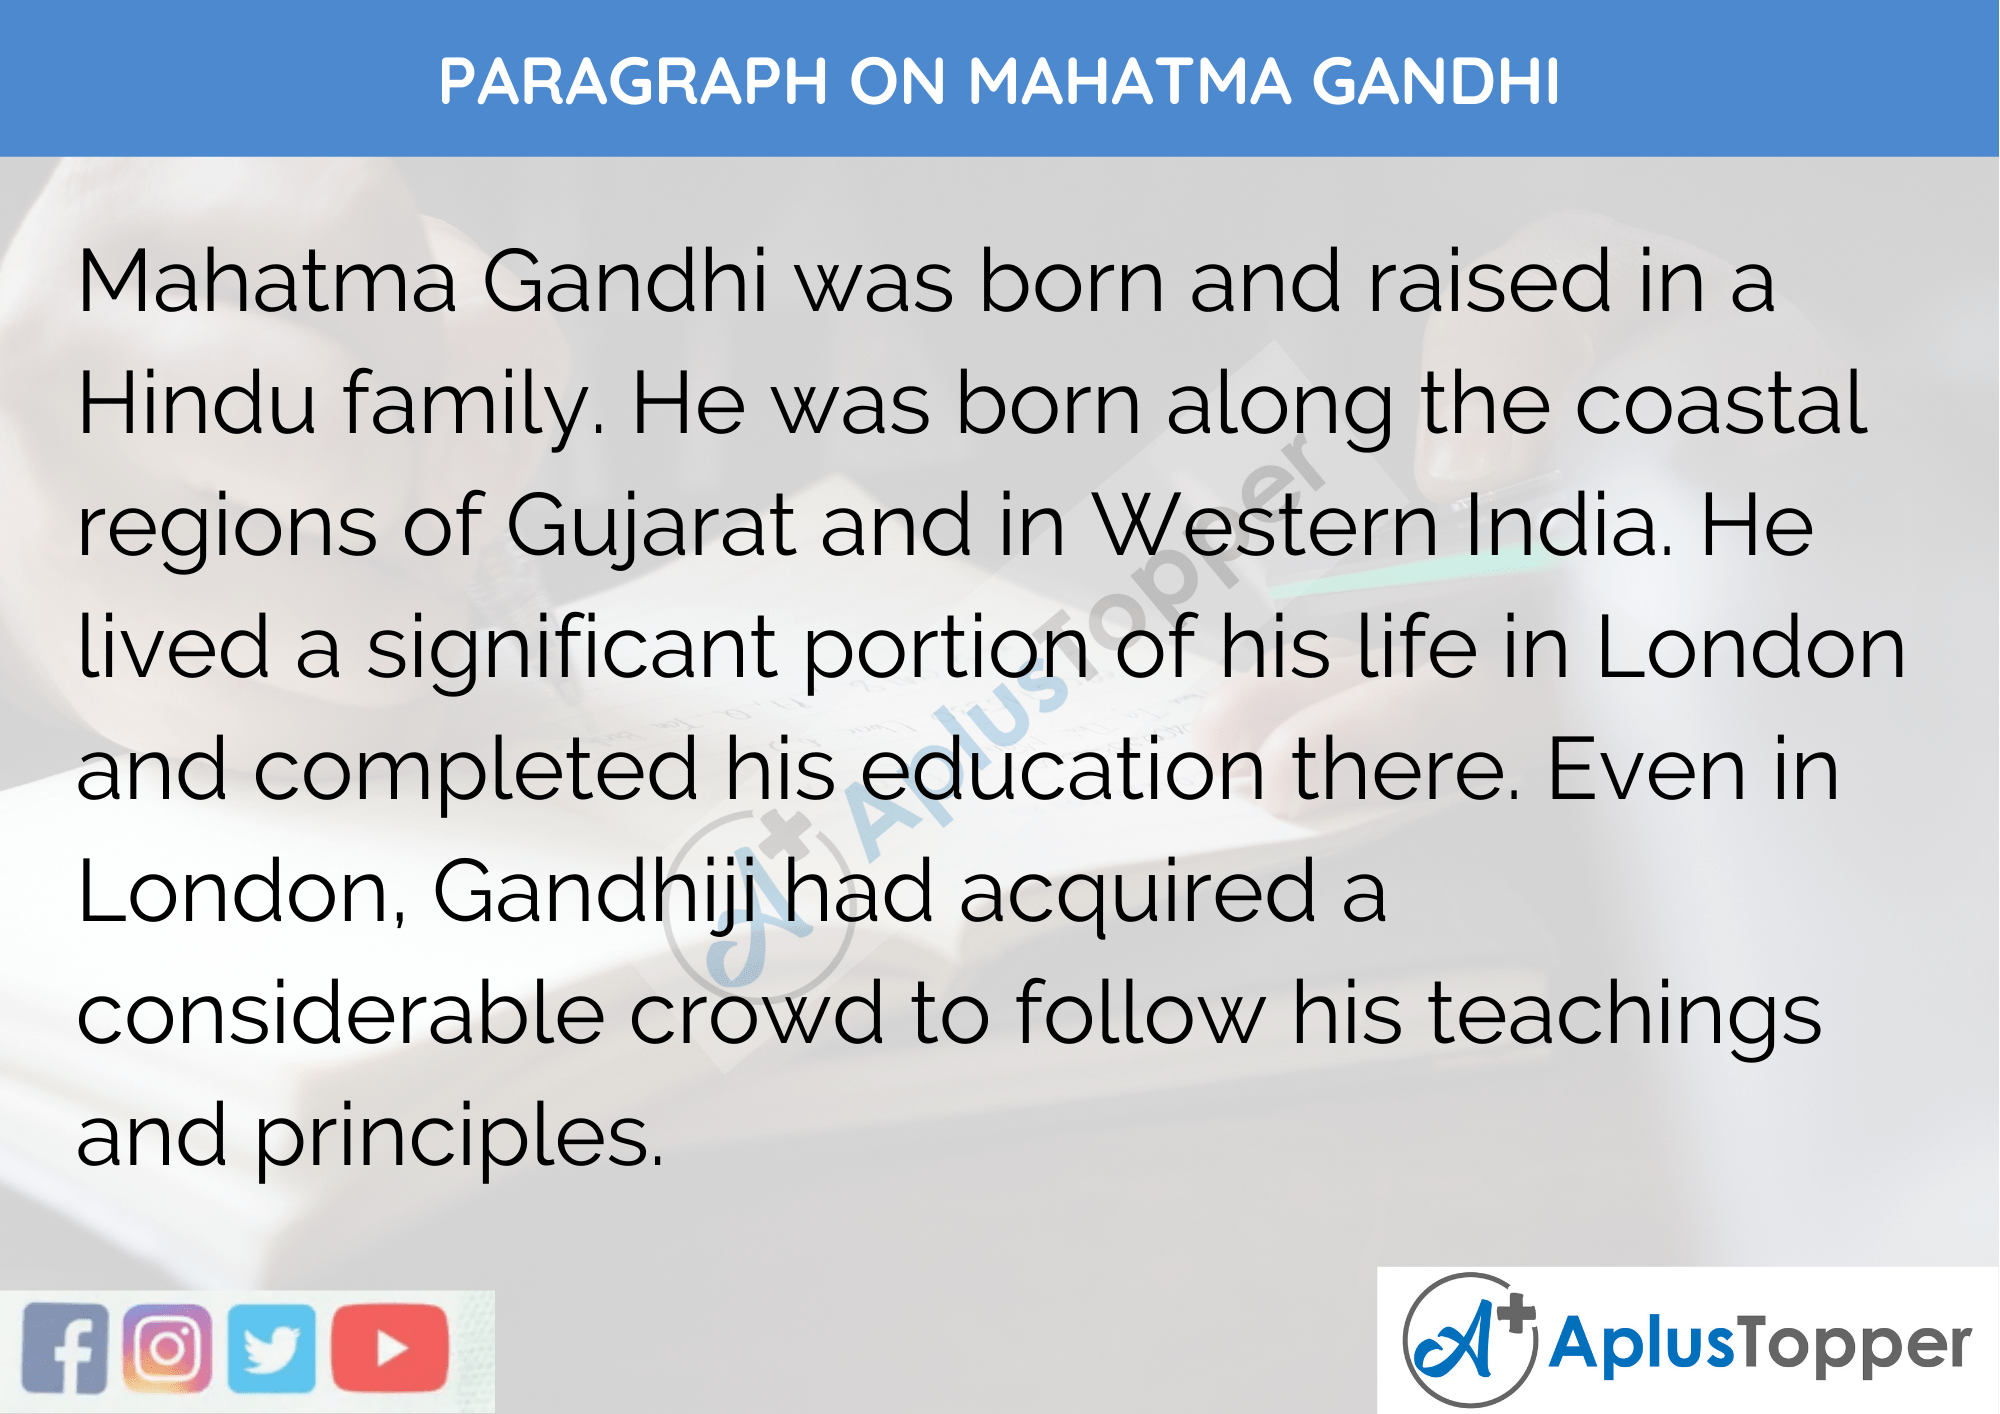 Paragraph On Mahatma Gandhi - 250 to 300 Words for Class 9,10,11,12 and Competitive Exams Students